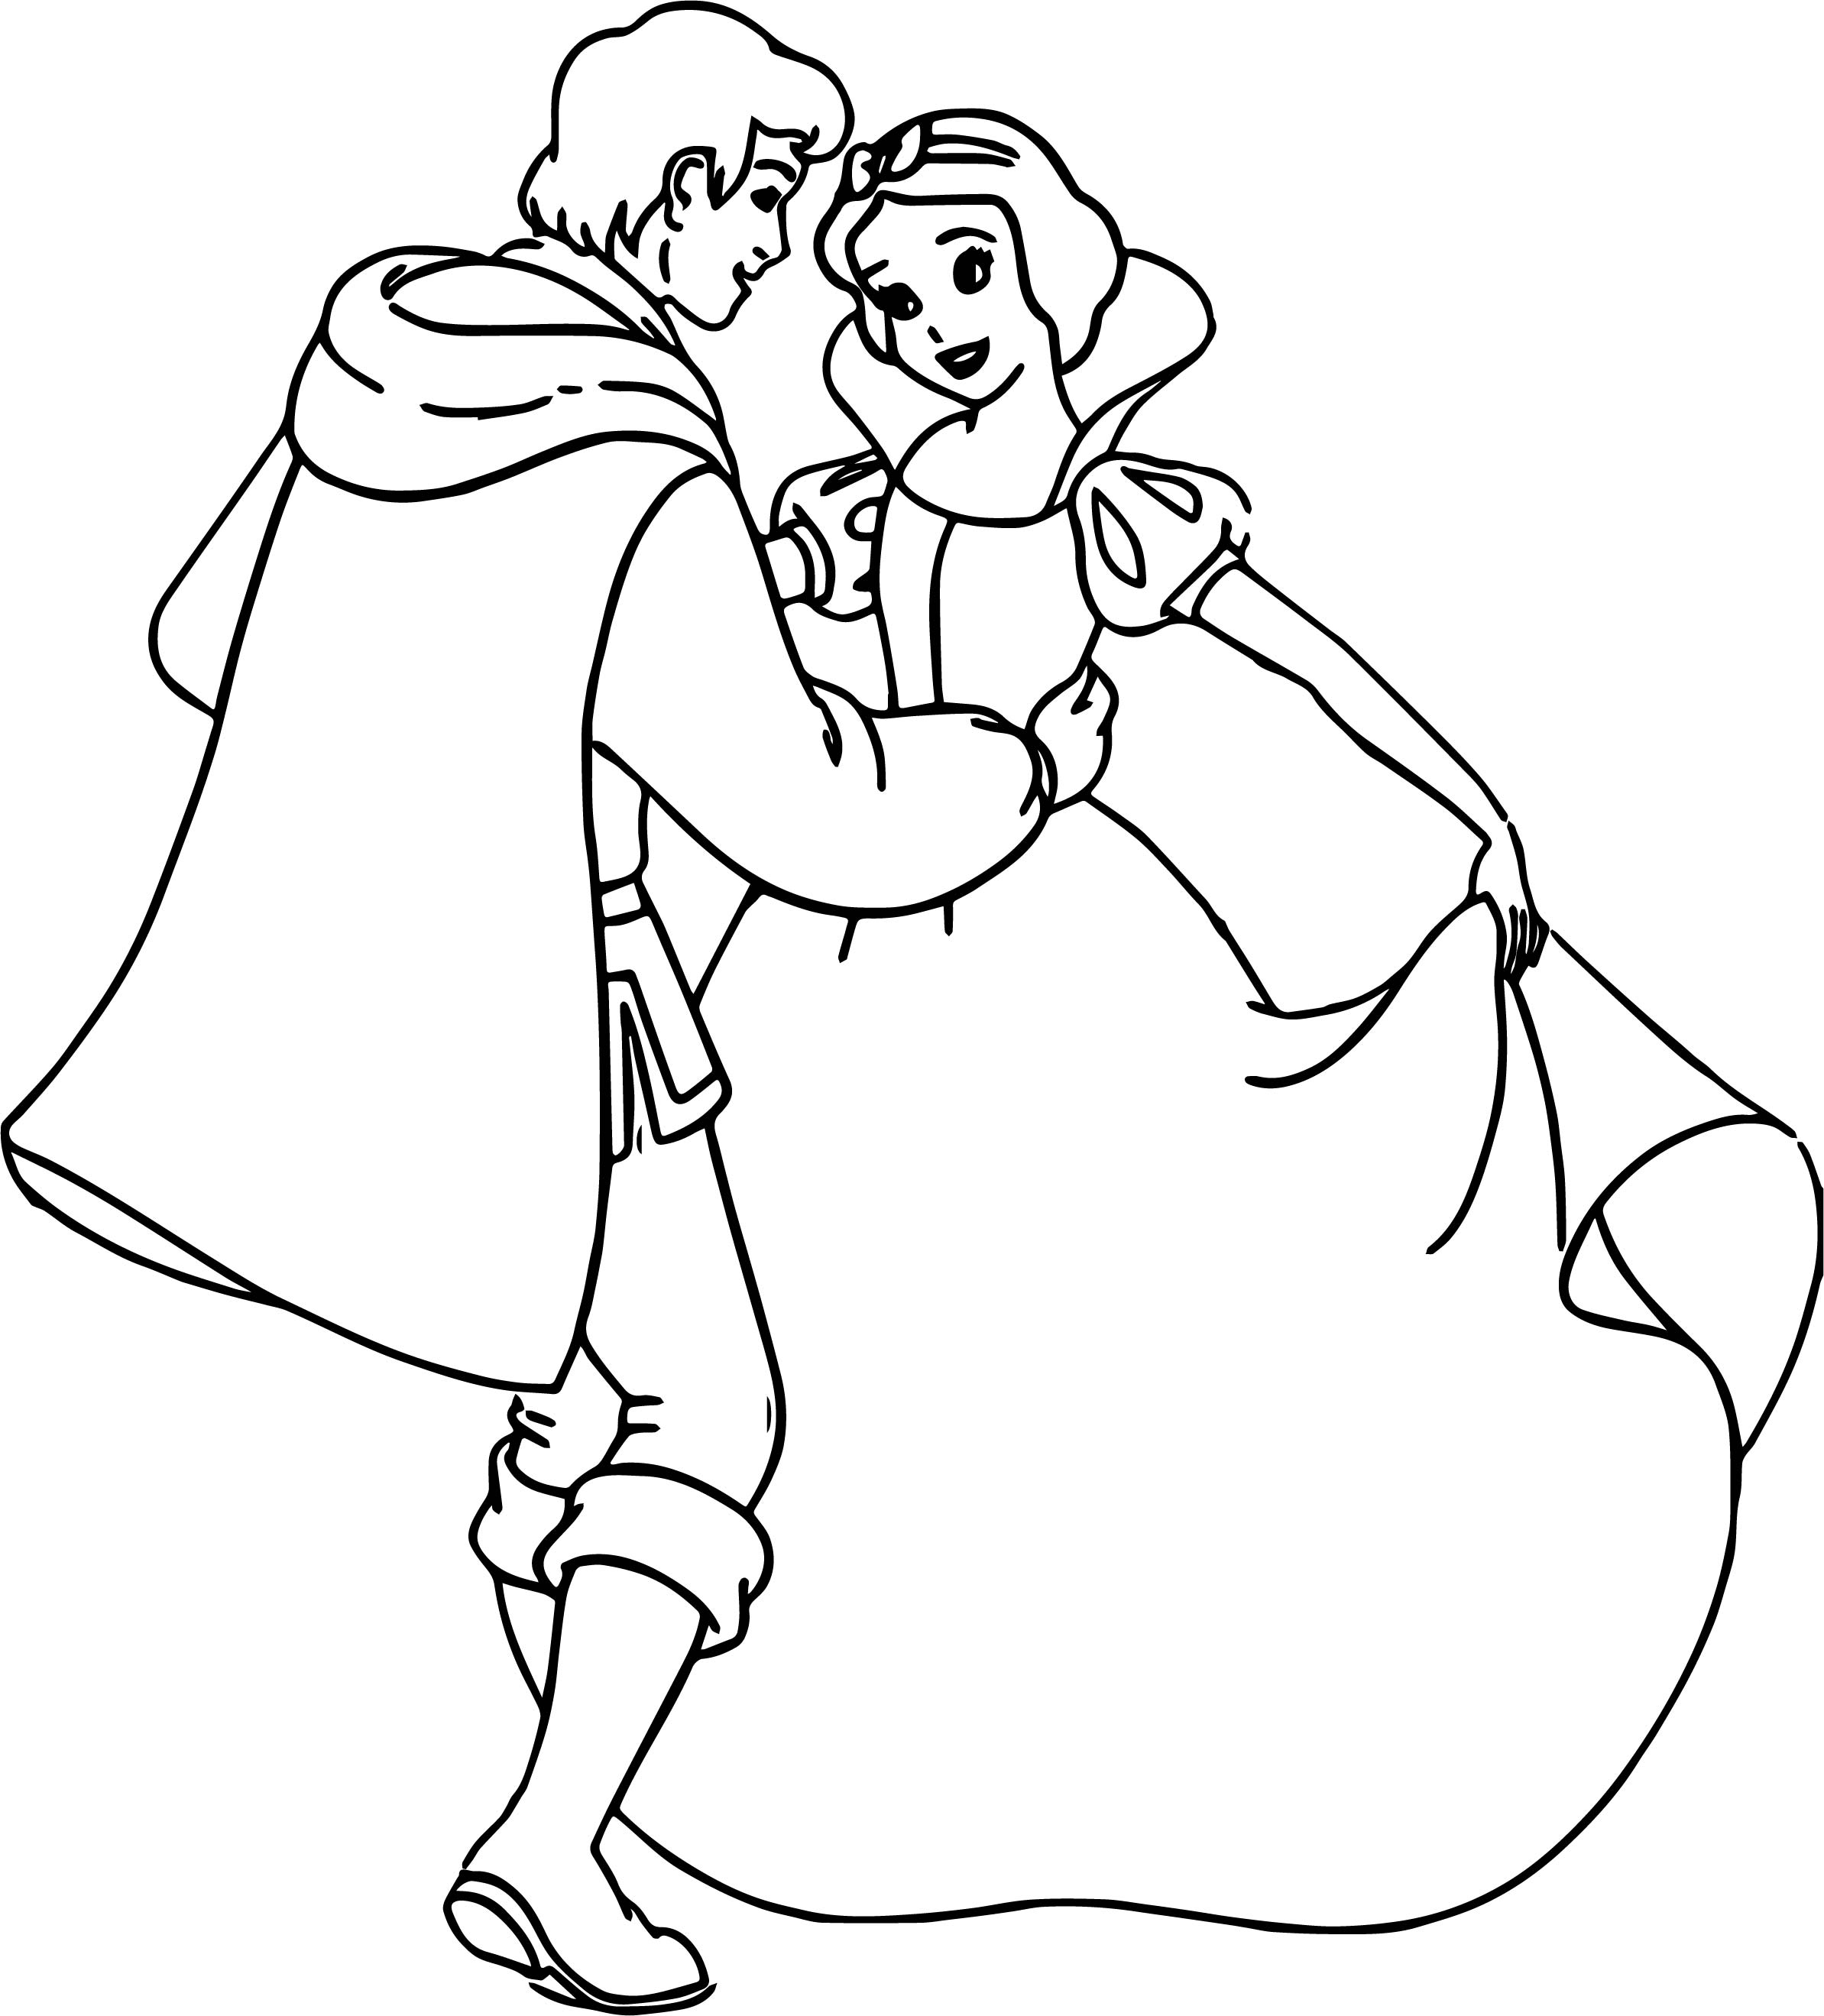 2387x2638 Princess Snow White Coloring Page For Girls Printable Free Pages